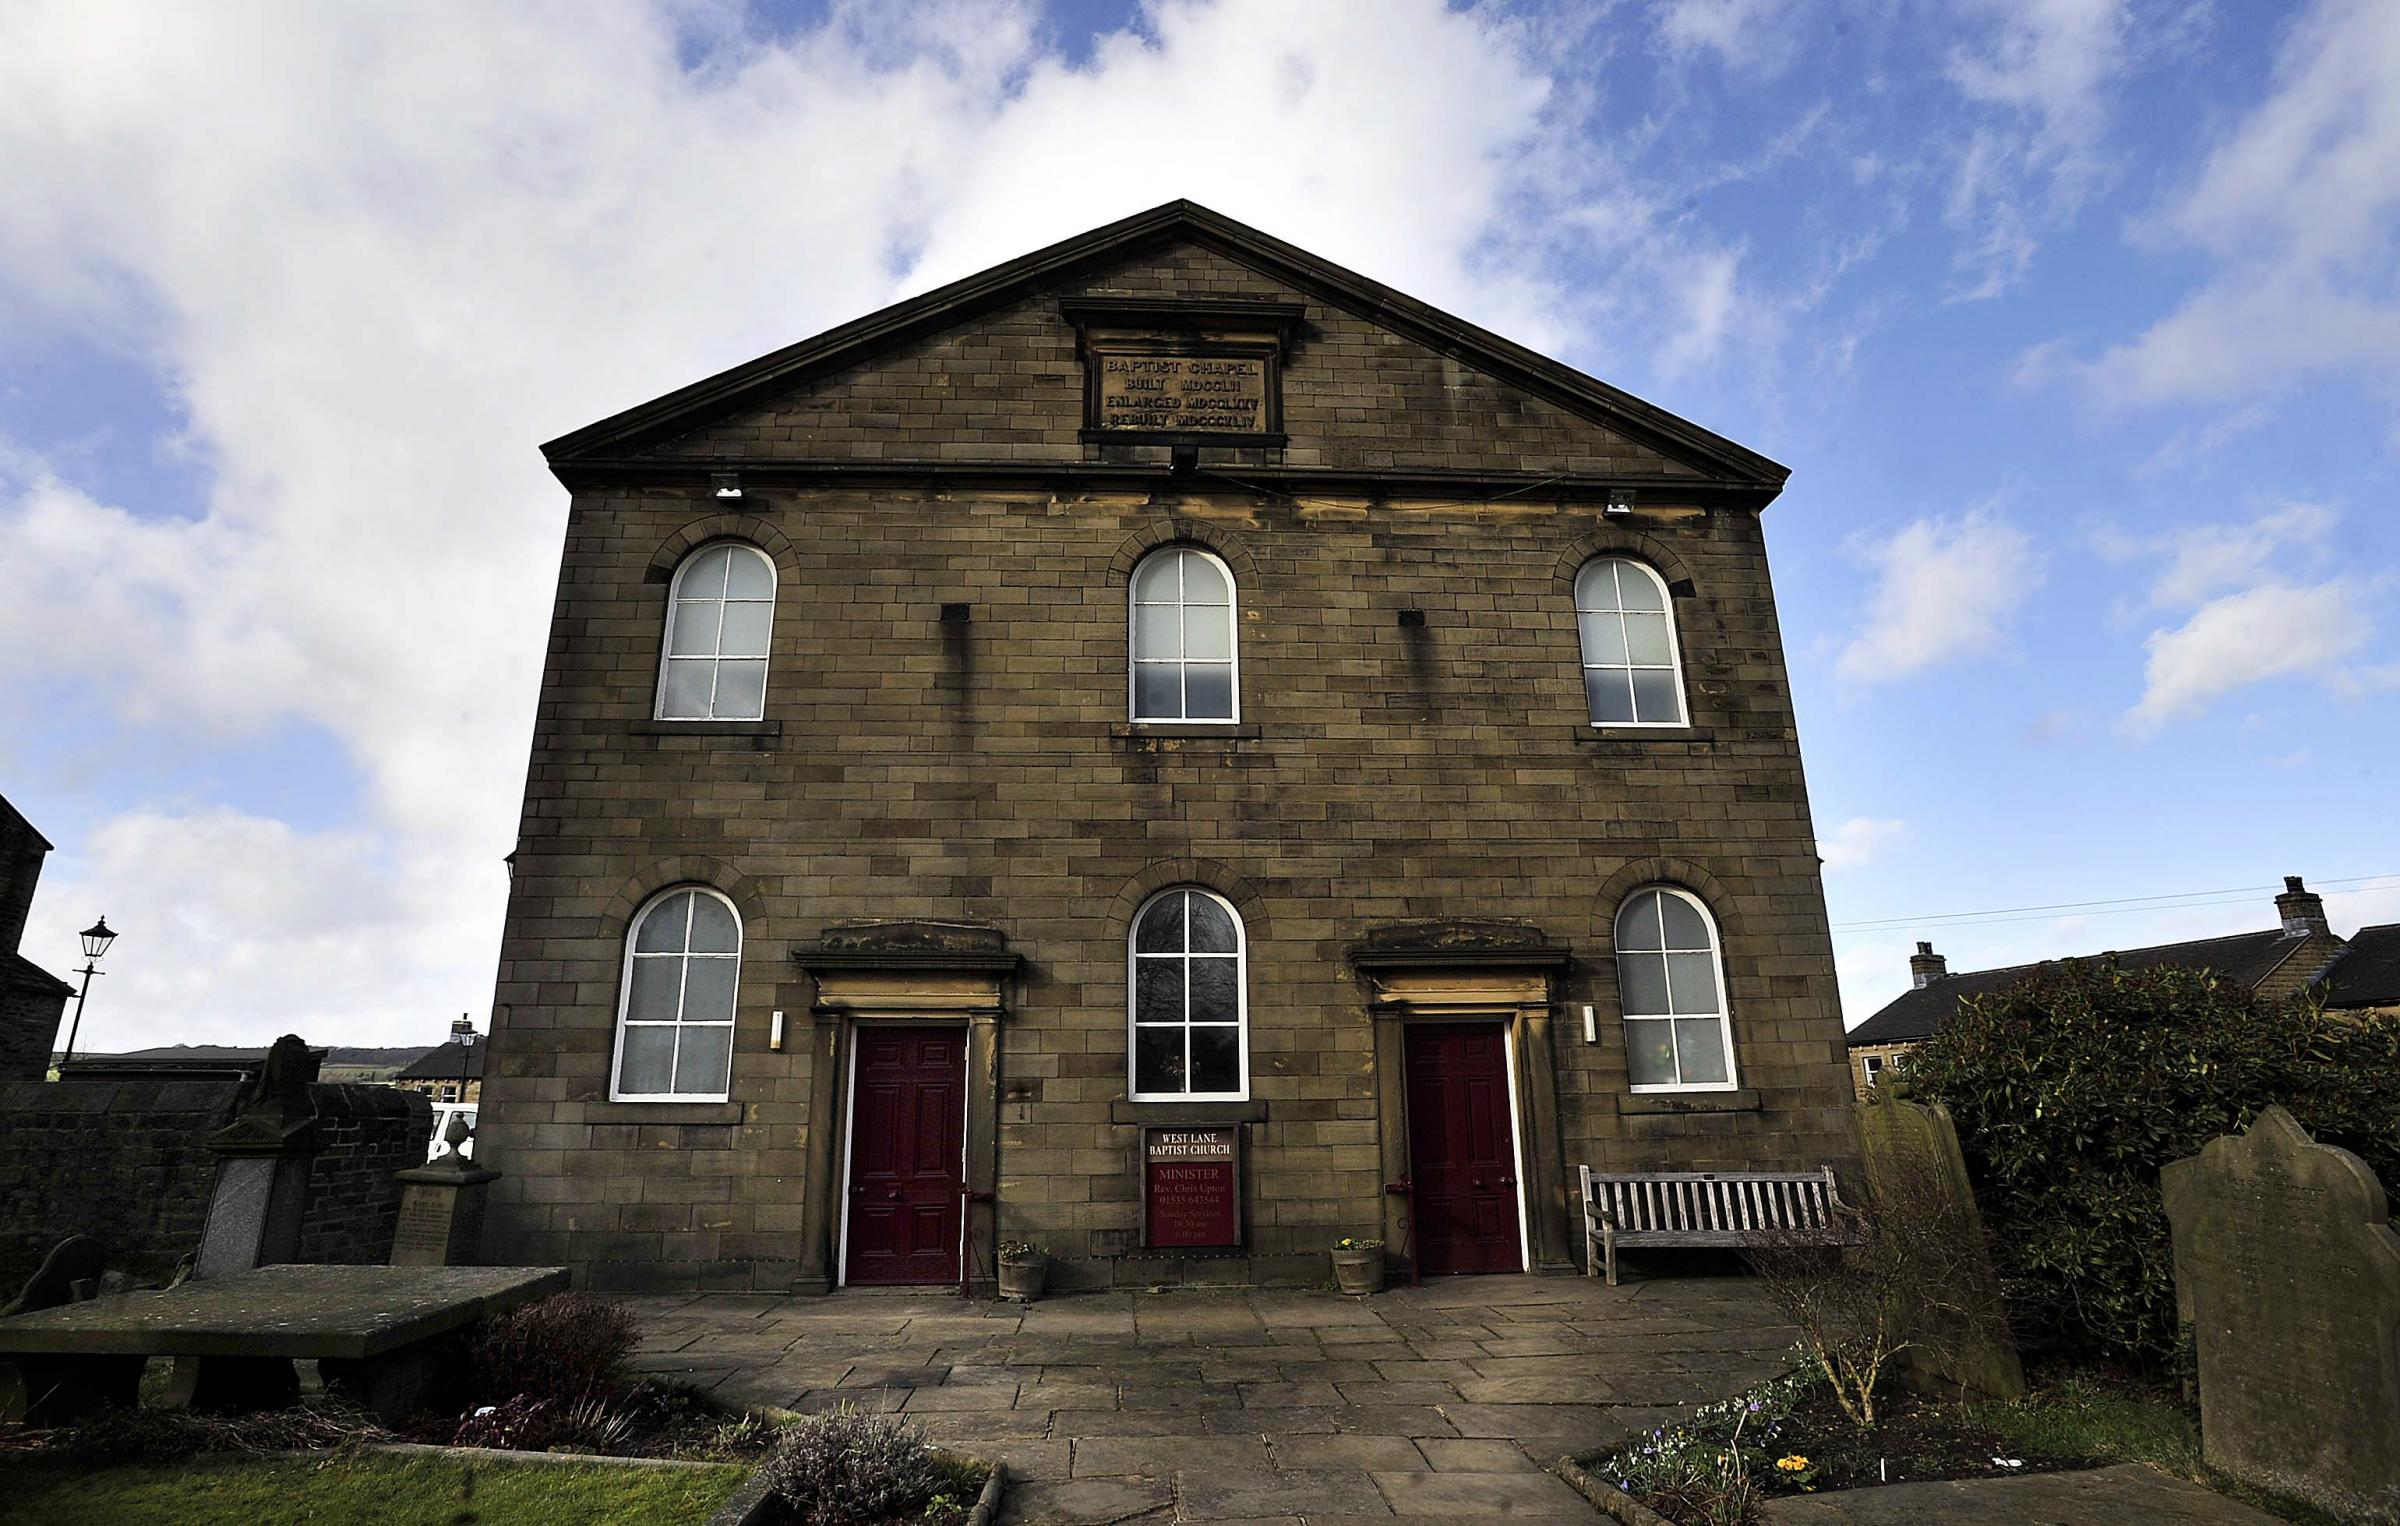 West Lane Baptist Church, which hosts screenings organised by Haworth Film Club